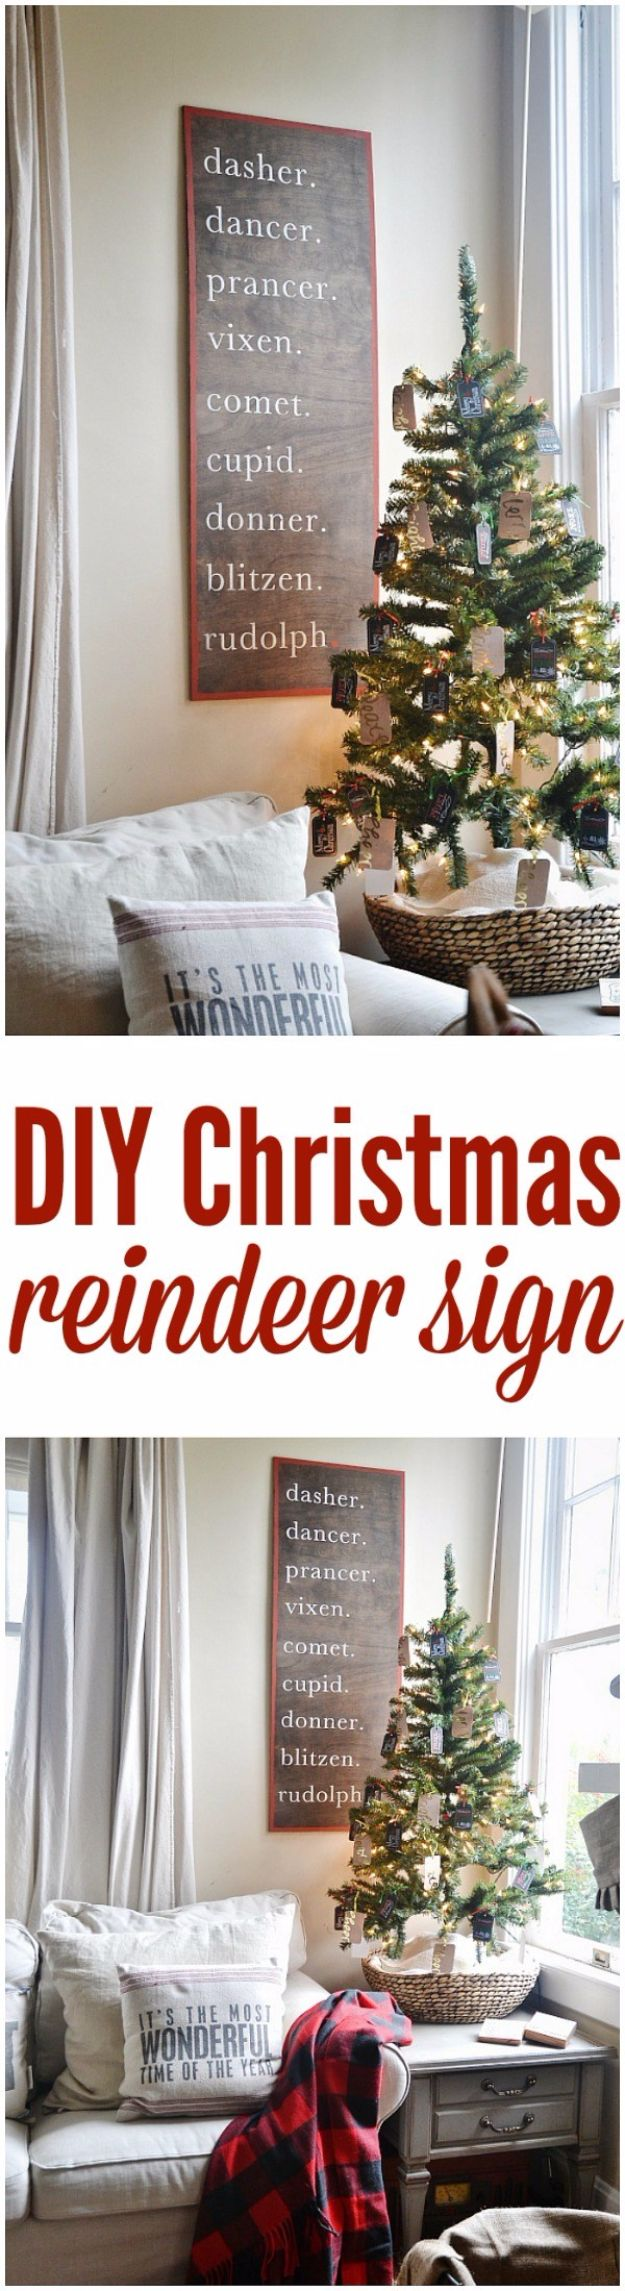 Cheap DIY Christmas Decor Ideas and Holiday Decorating On A Budget - Christmas Reindeer Sign - Easy and Quick Decorating Ideas for The Holidays - Cool Dollar Store Crafts for Xmas Decorating On A Budget - wreaths, ornaments, bows, mantel decor, front door, tree and table centerpieces #christmas #diy #crafts